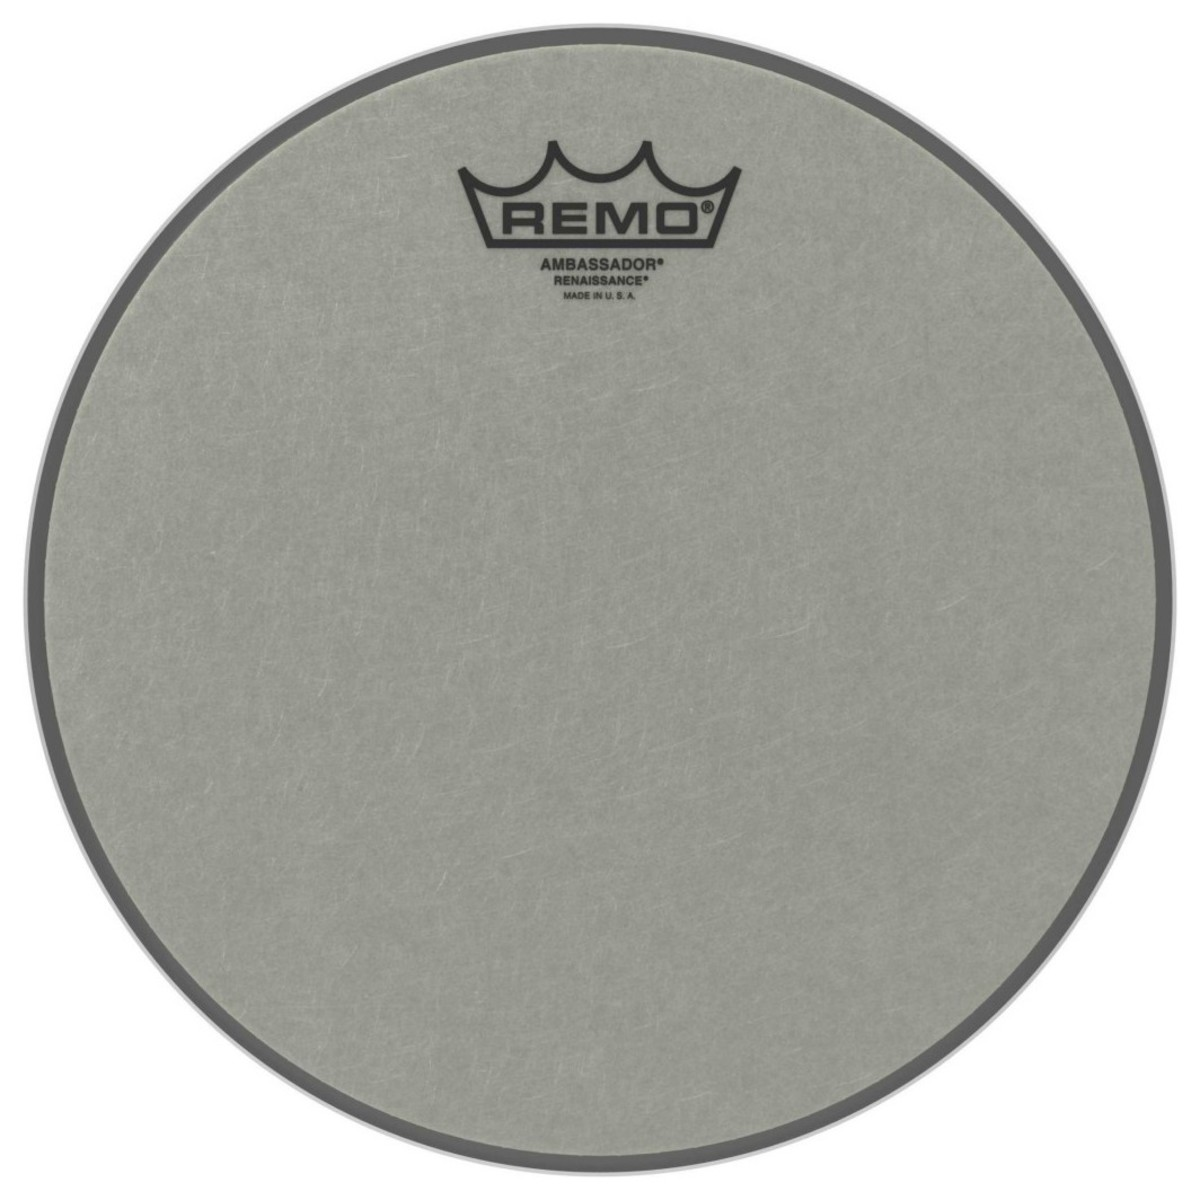 Click to view product details and reviews for Remo Ambassador Renaissance 22 Bass Drum Head.